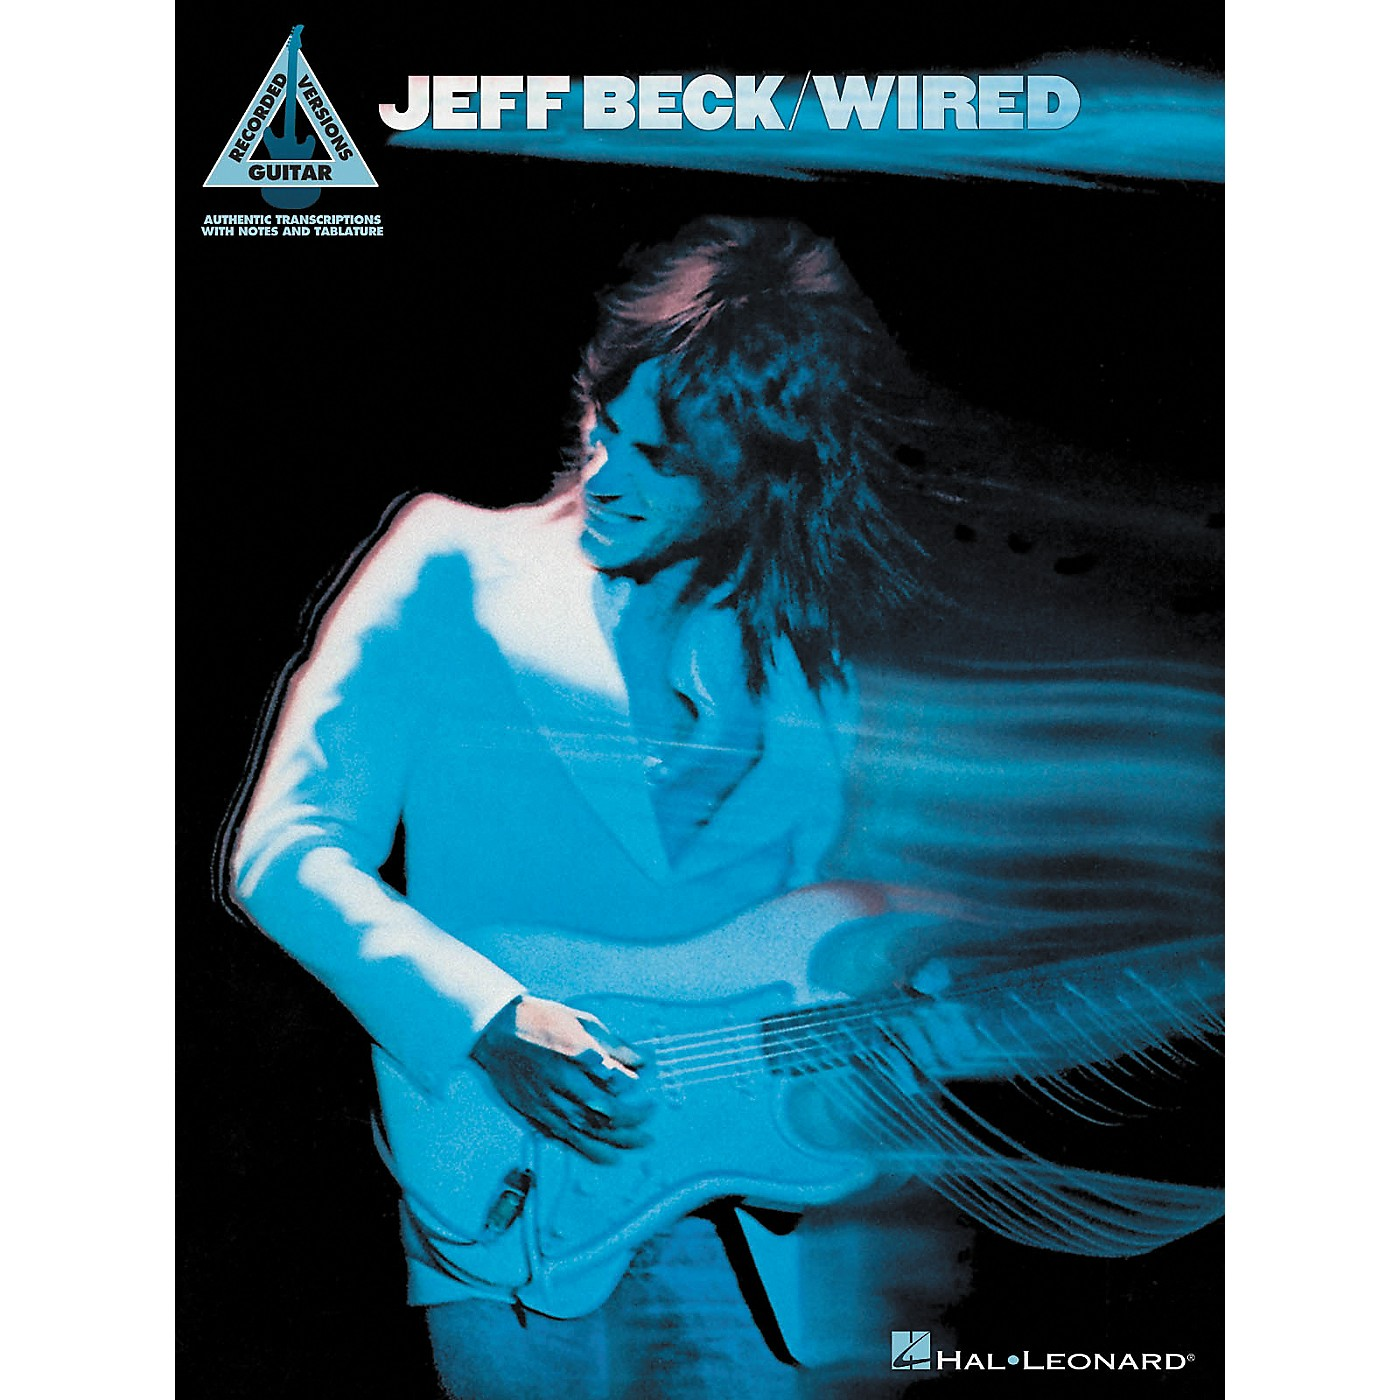 Hal Leonard Jeff Beck - Wired Guitar Tab Songbook thumbnail